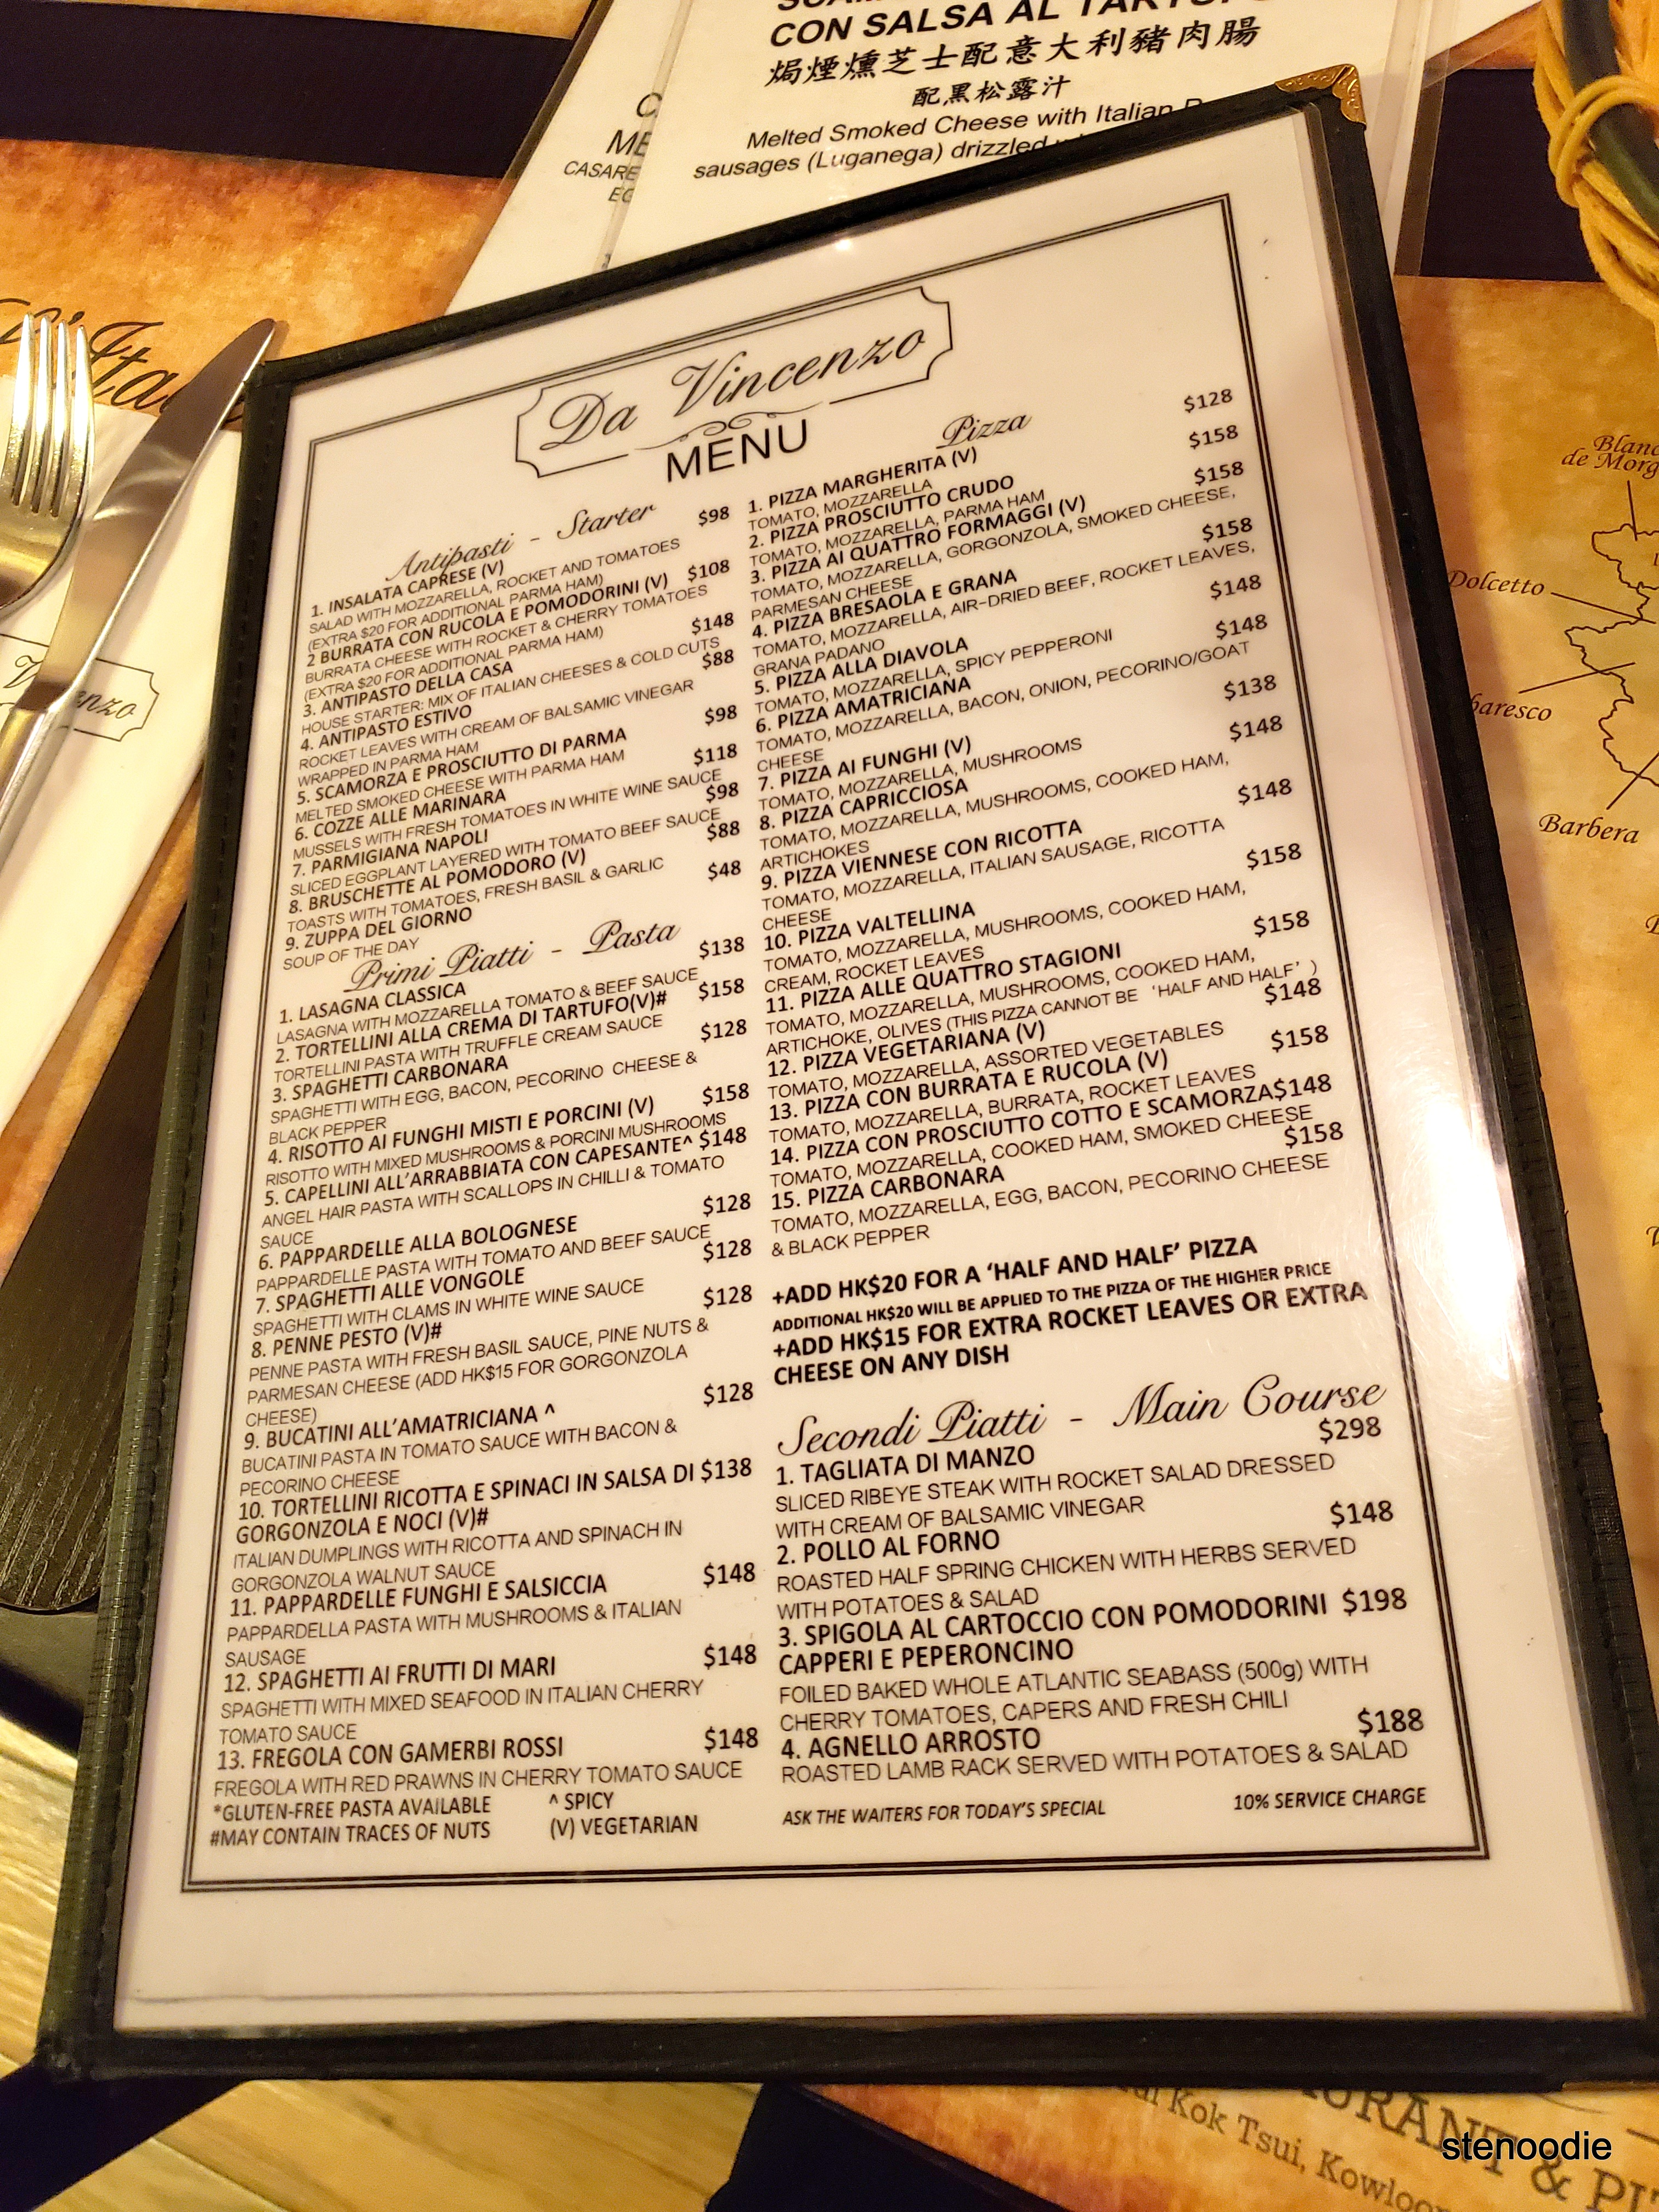 Ristorante Pizzeria Da Vincenzo menu and prices